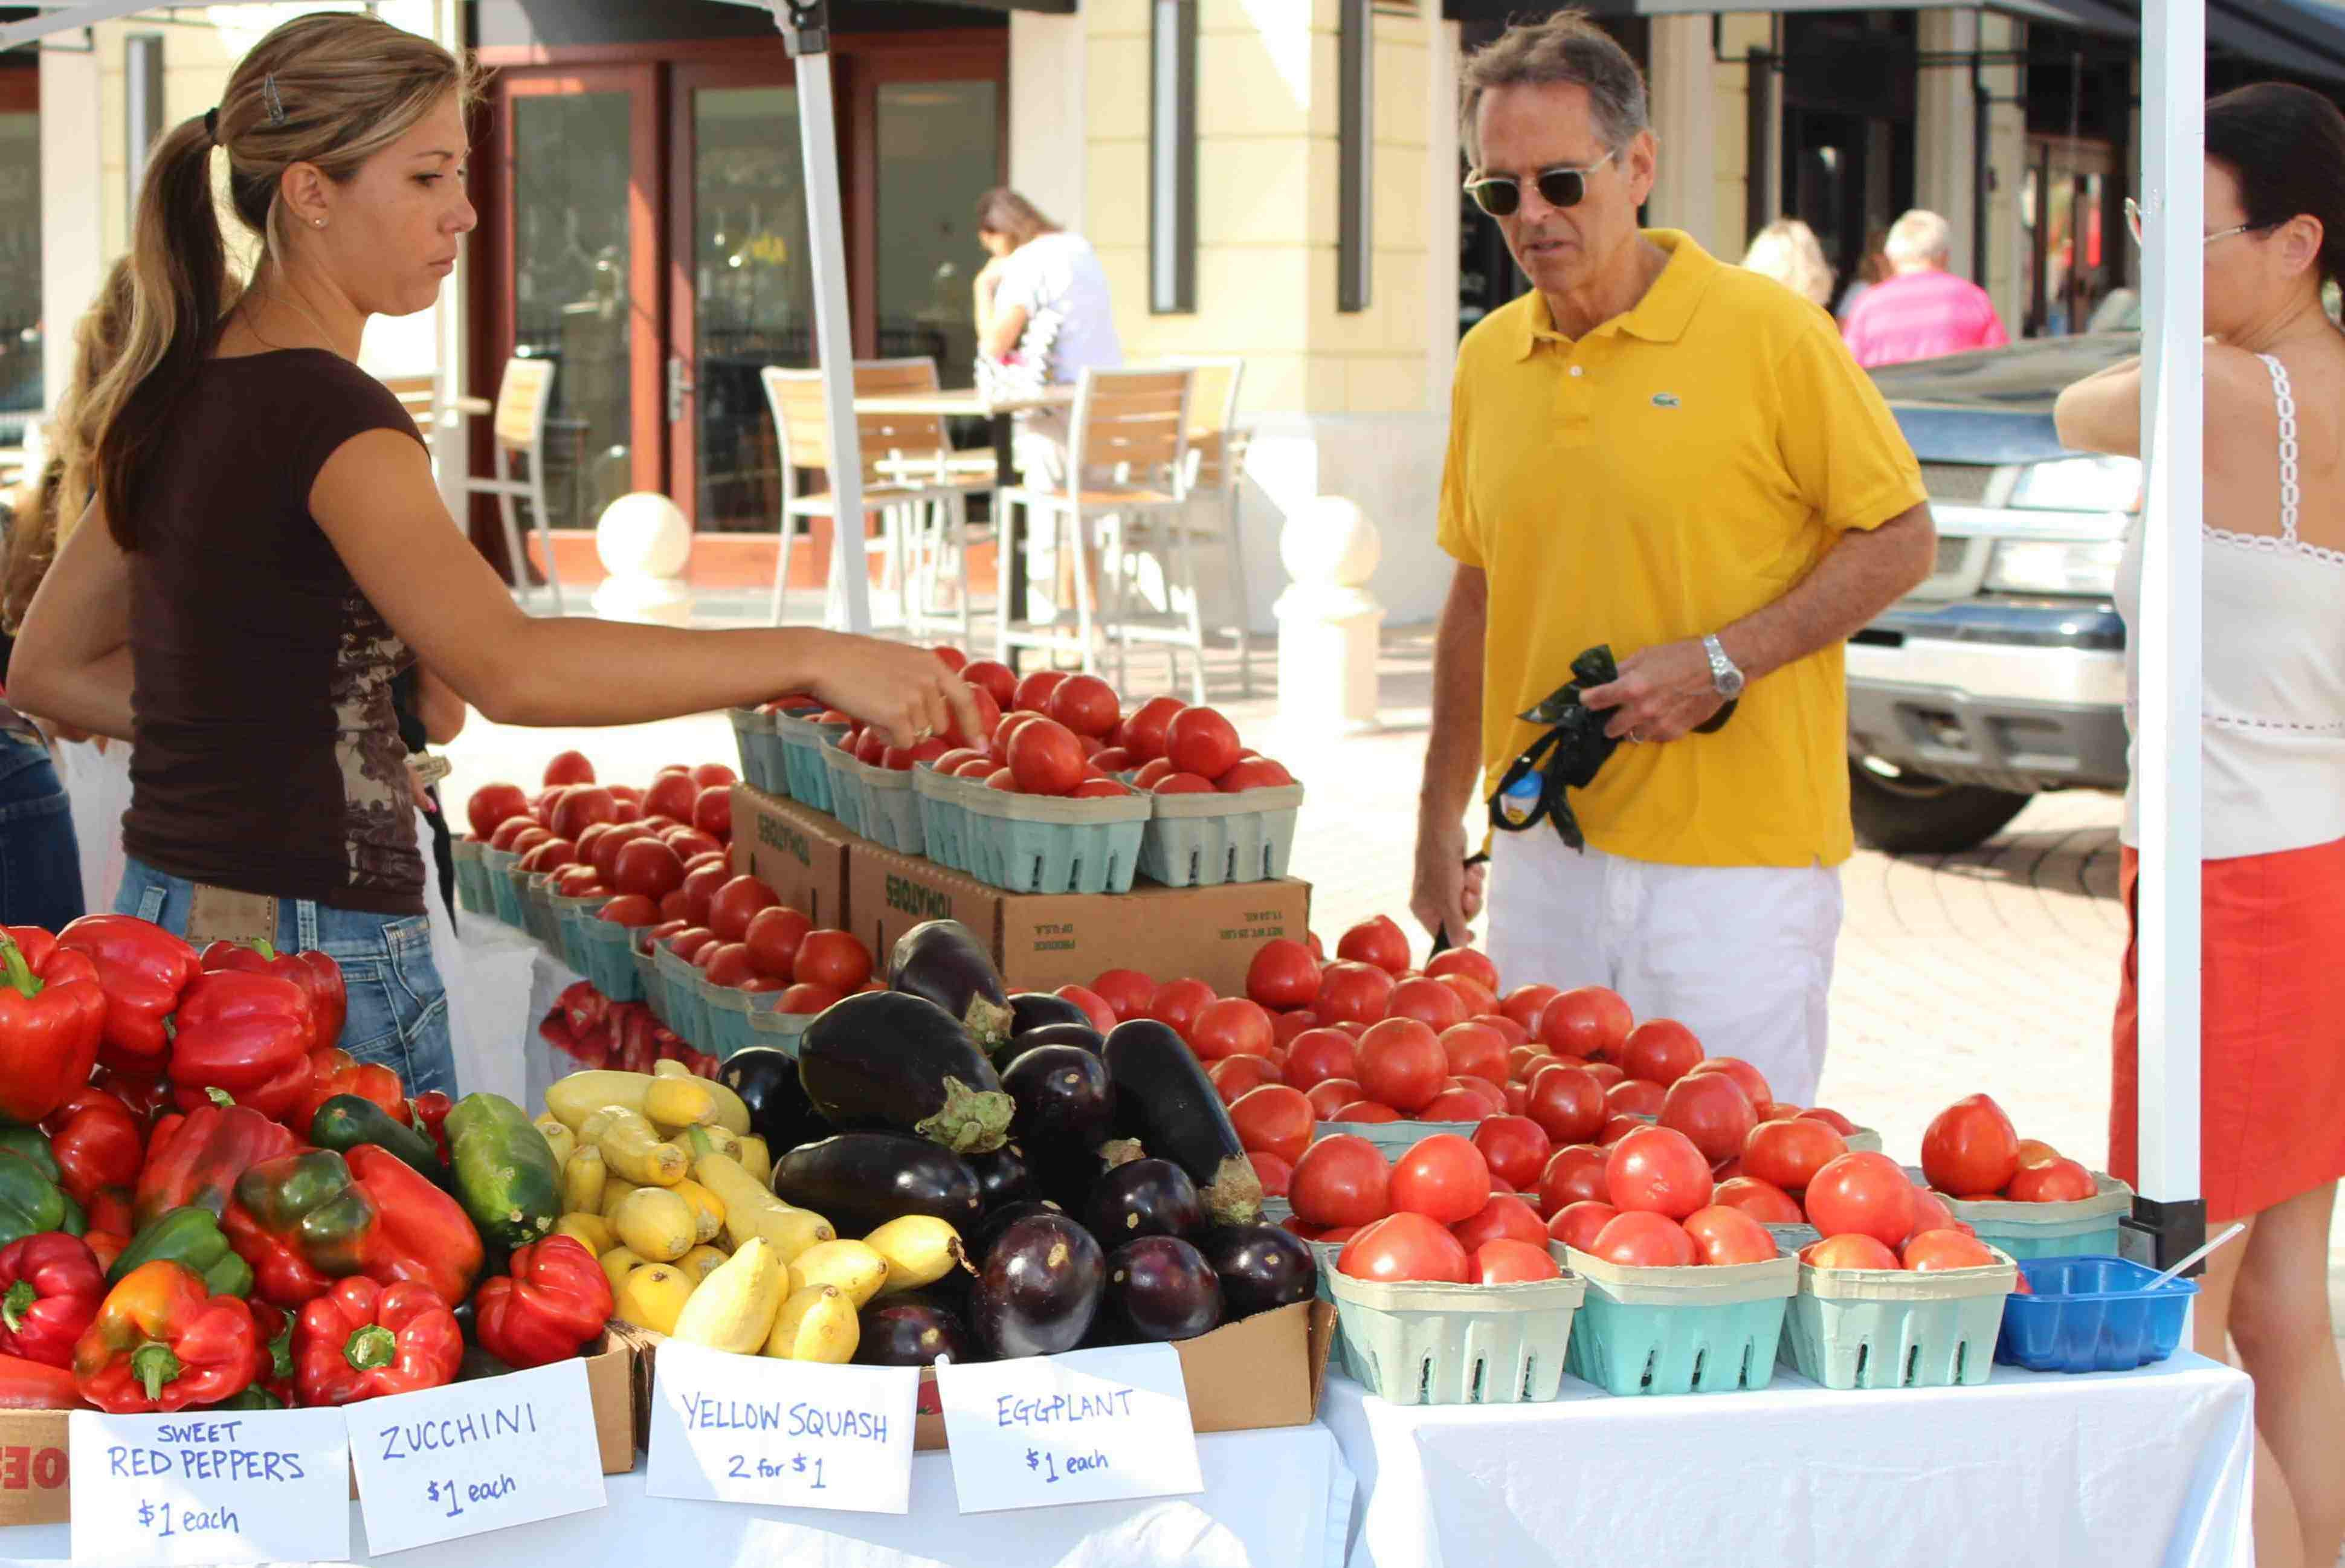 A Large Farmers Market With Over 80 Vendors This Market Was Founded In 1994 And Is The Largest Farmers Market Palm Beach West Palm Beach West Palm